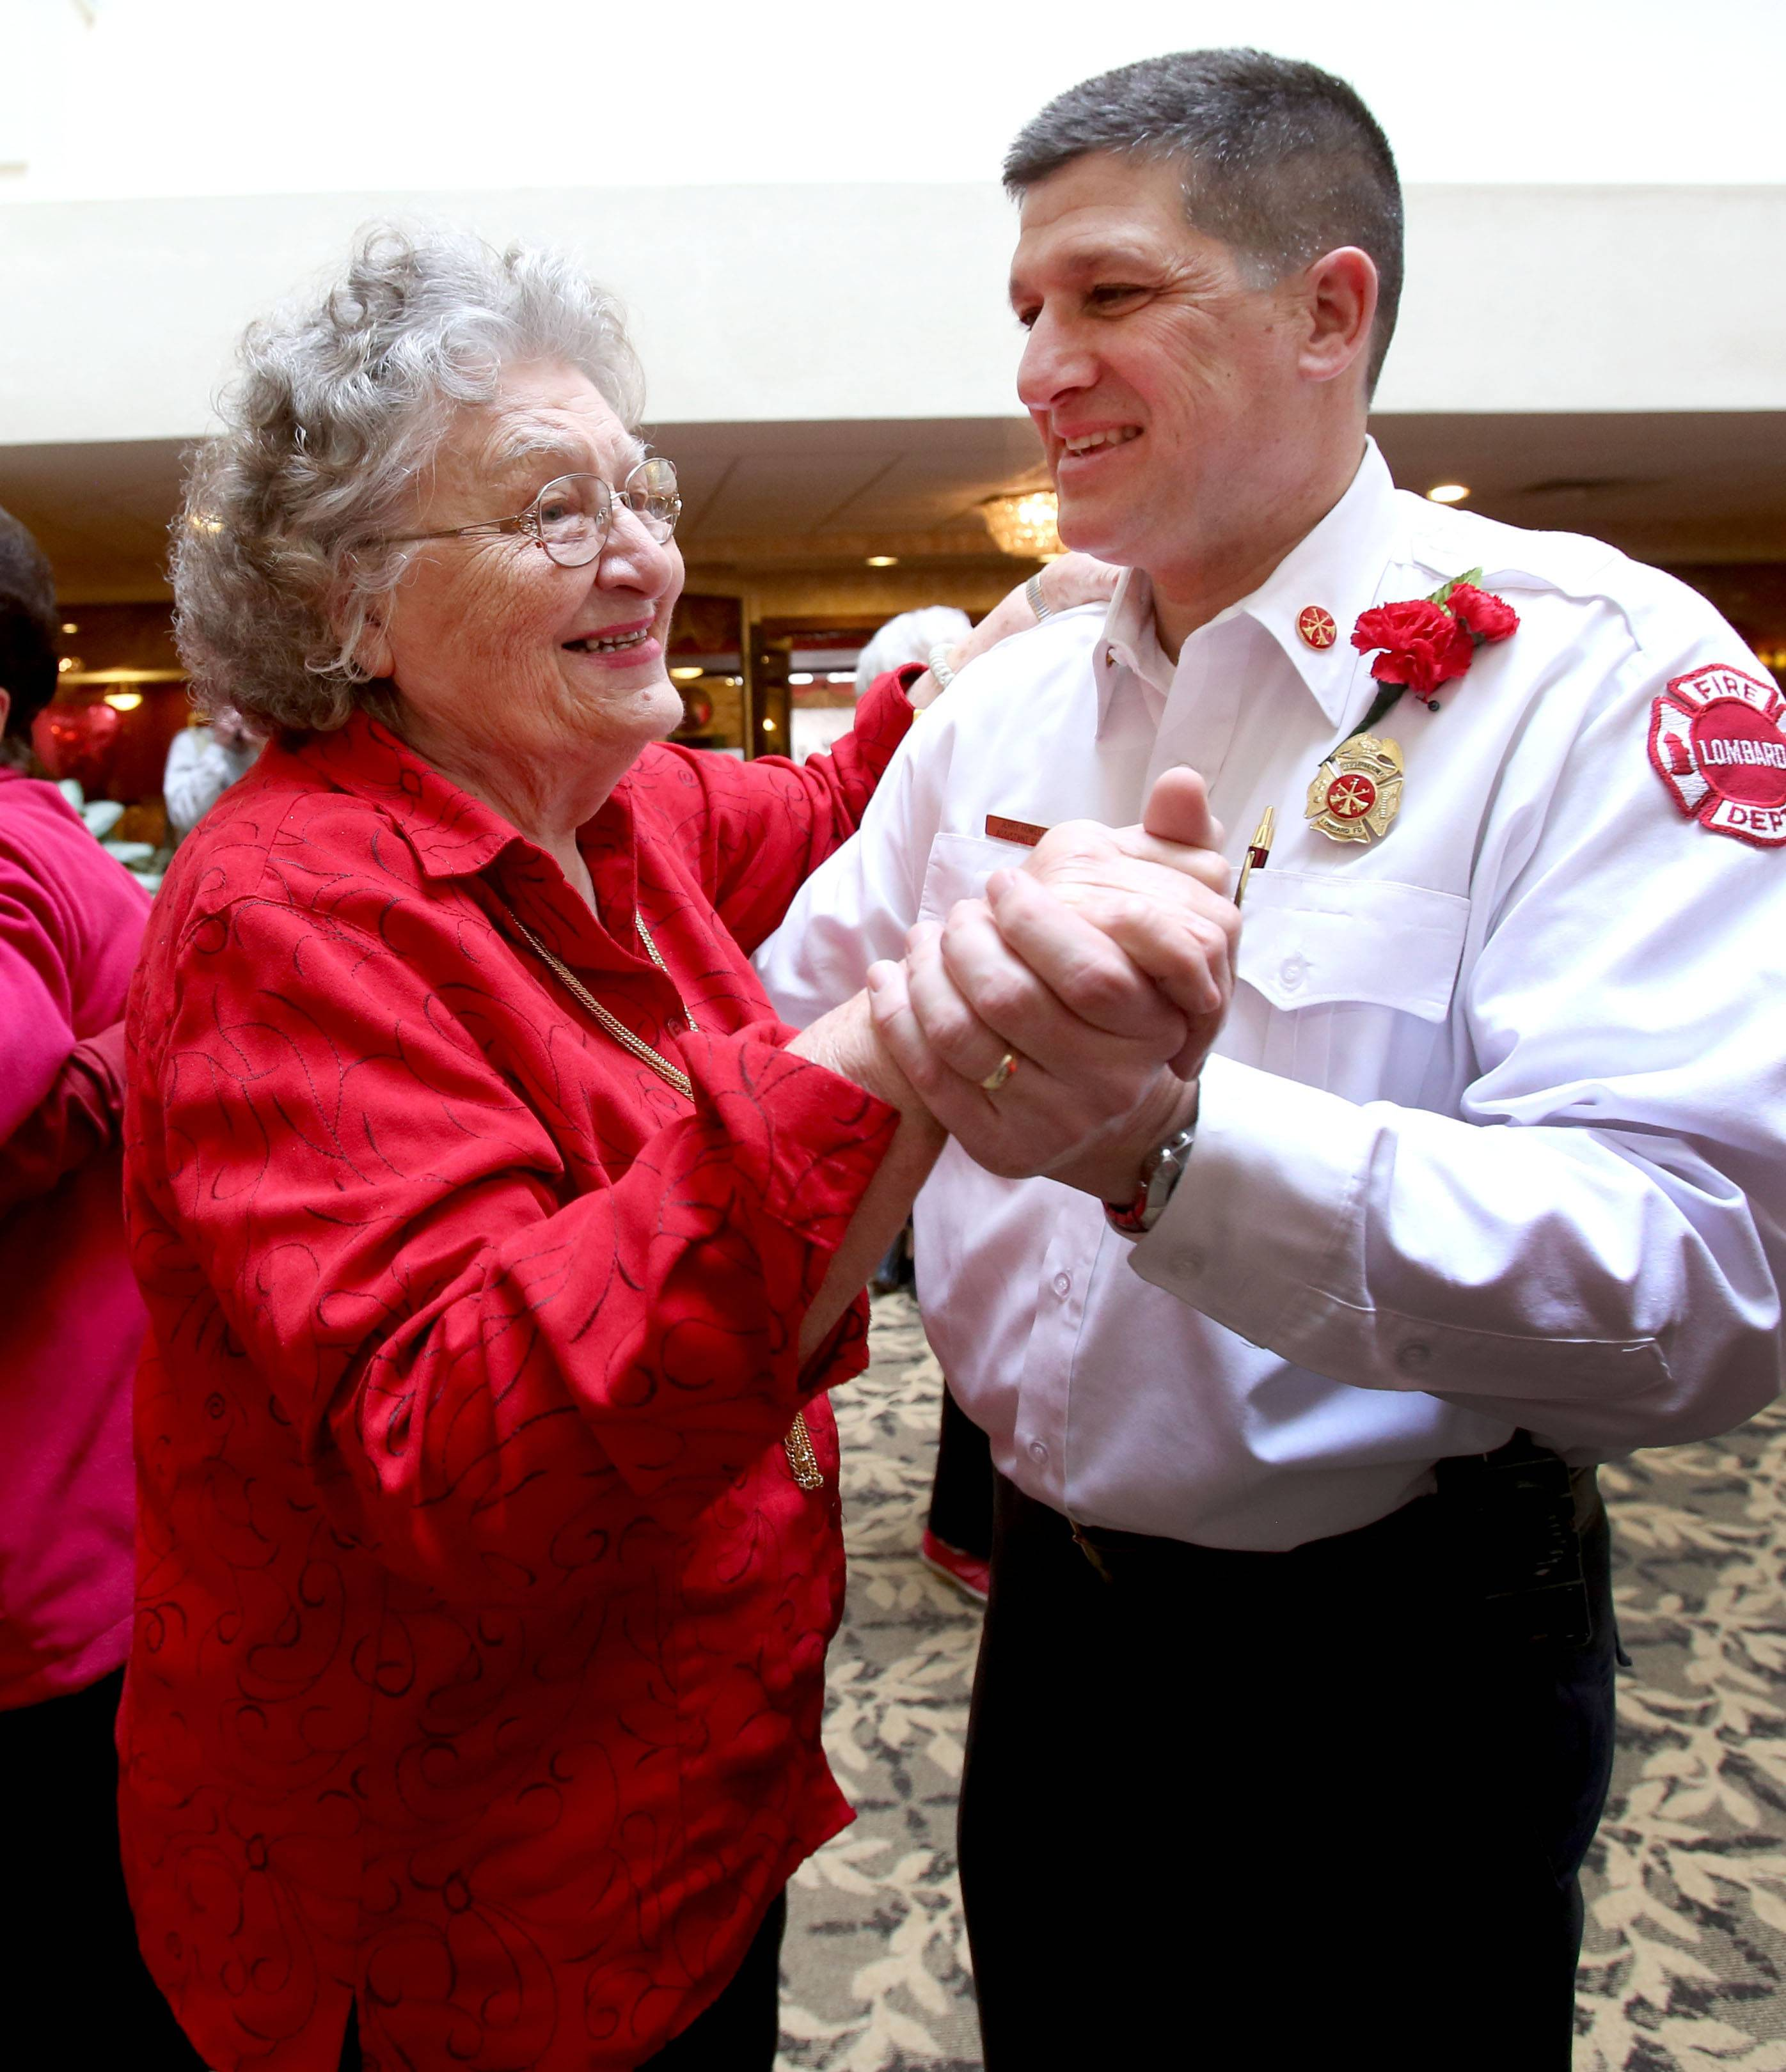 Lillian Mastro dances with Assistant Fire Chief Jerry Howell at a Valentine's Day dance at Lexington Square senior center Friday in Lombard.